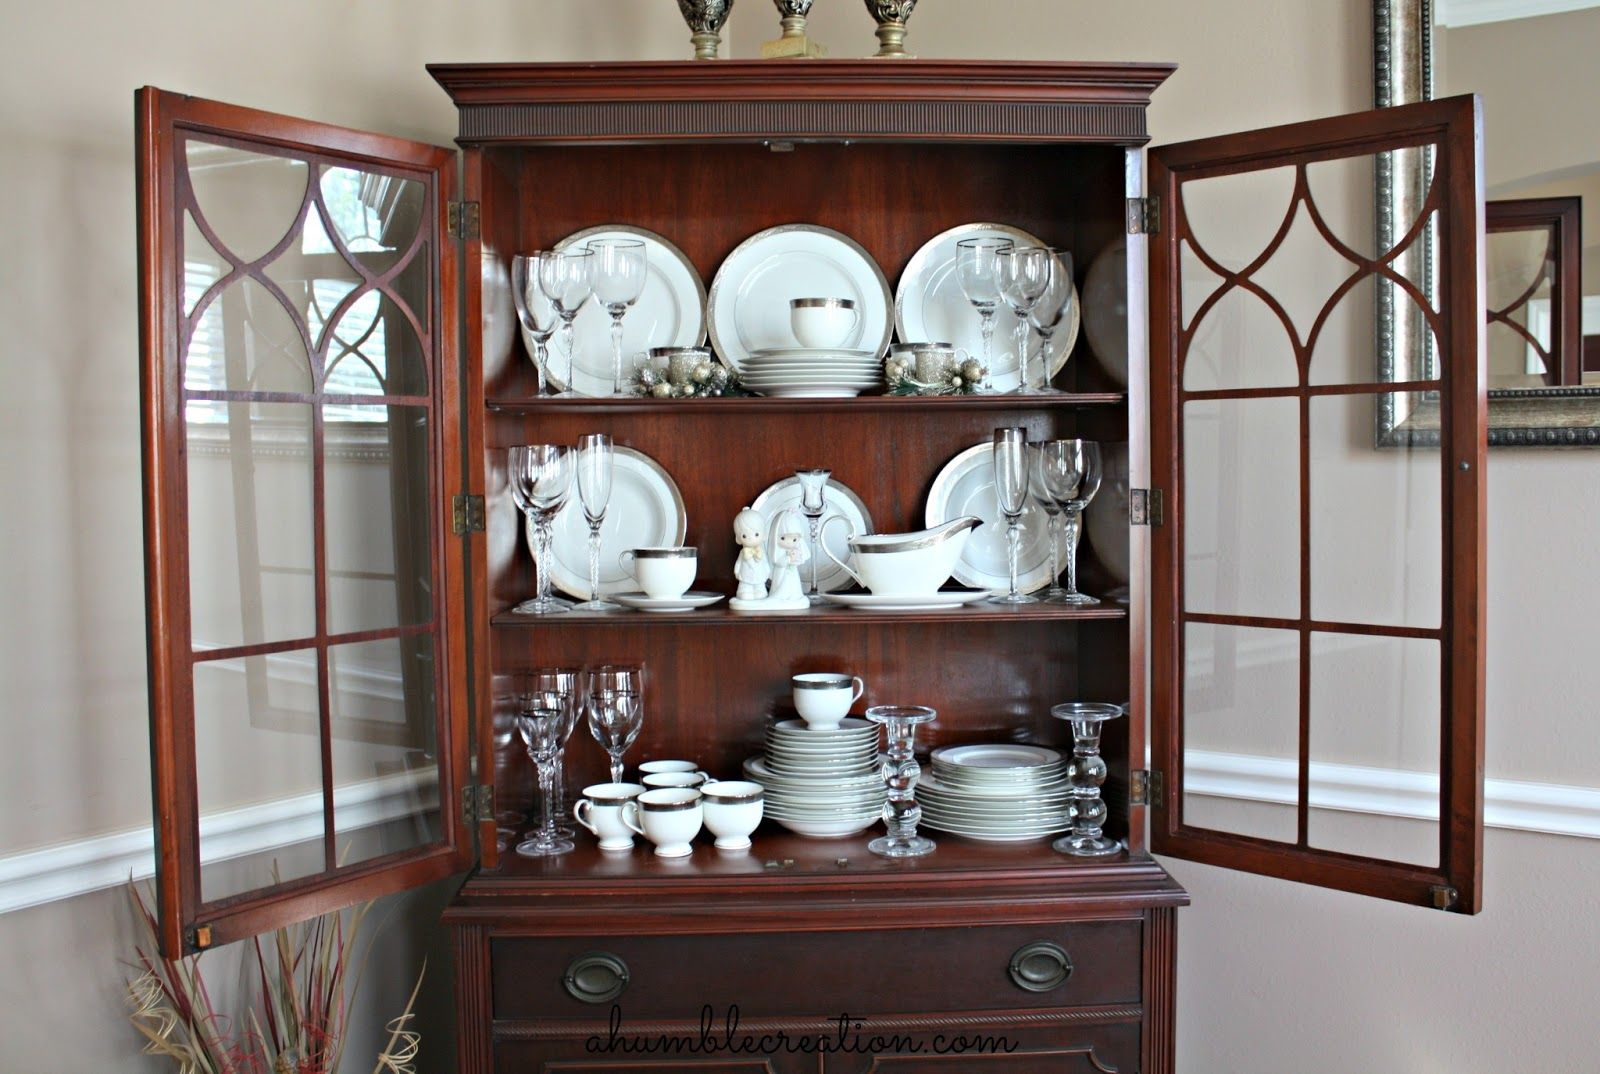 A Second Picture Of How To Arrange My Dining Cabinet Humble Creation If These Dishes Could Speak